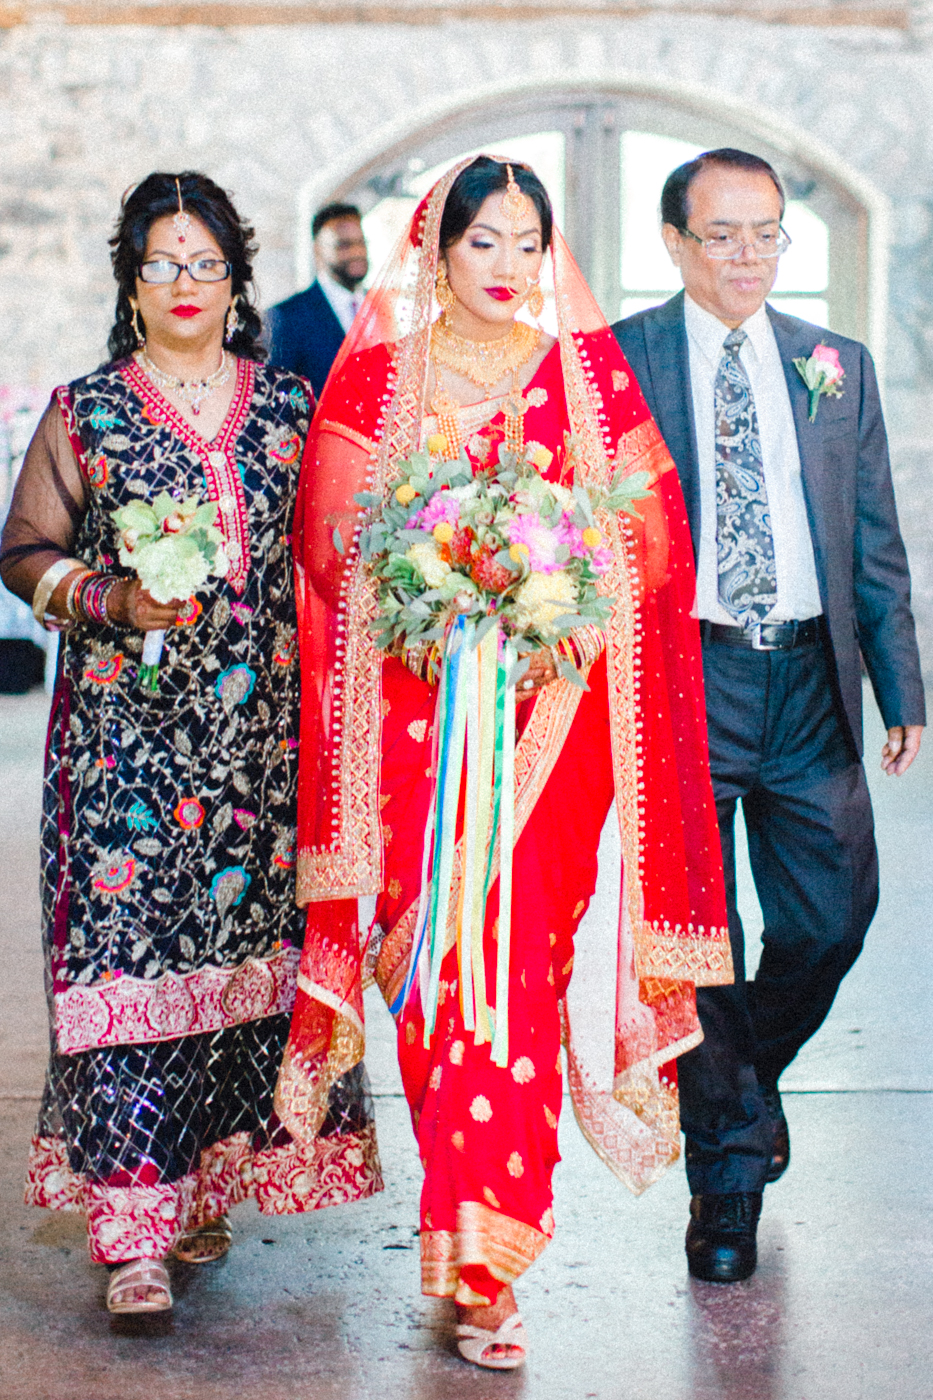 four corners photography atlanta wedding photographer indian wedding 550 trackside wedding atlanta indian wedding photographer (13 of 54).jpg